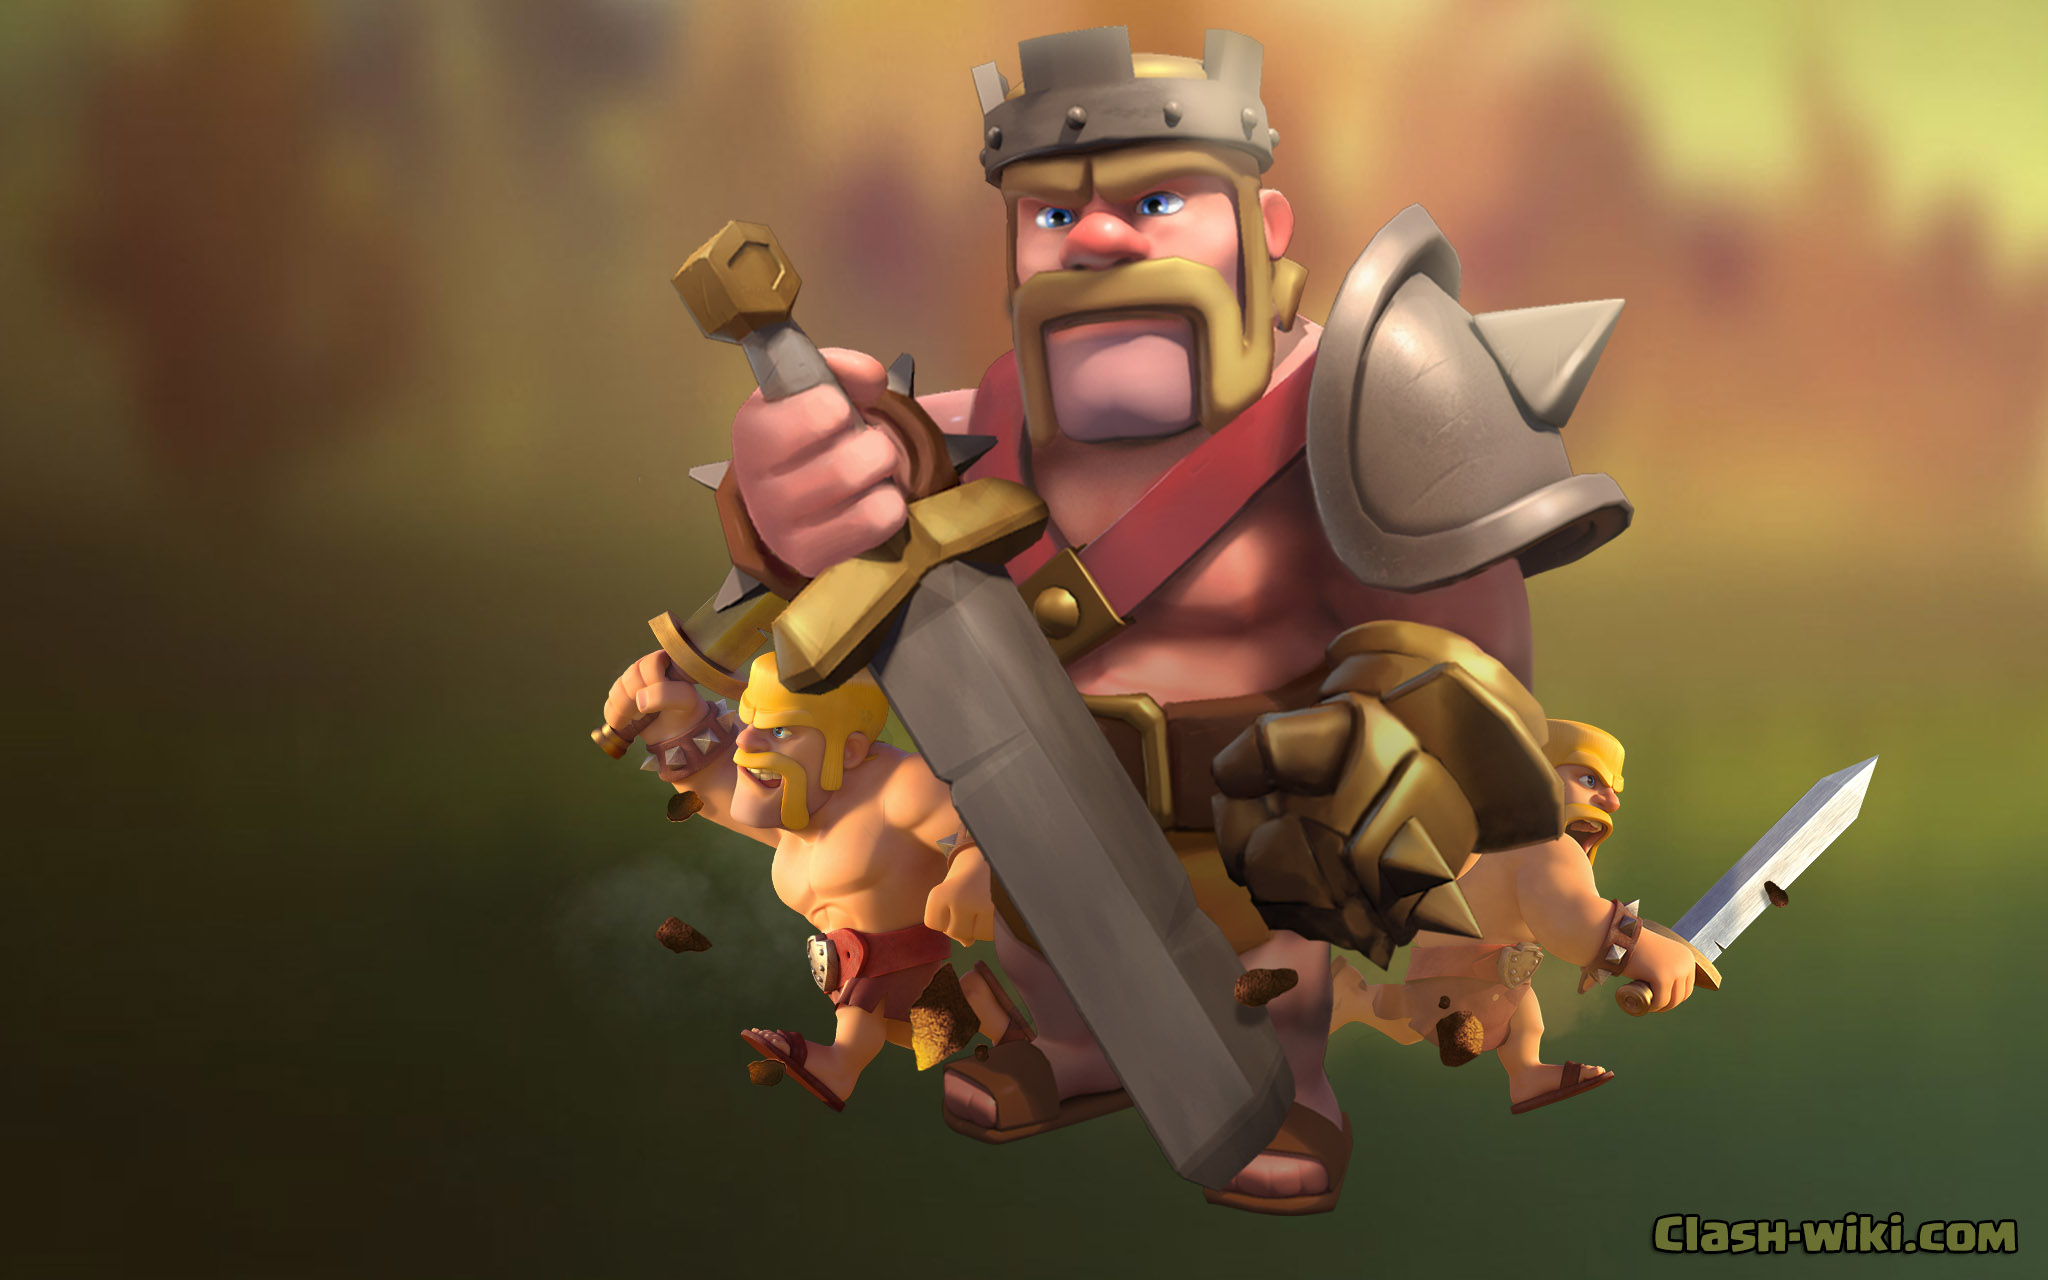 Clash Of Clans Wallpapers Clash Wiki Com